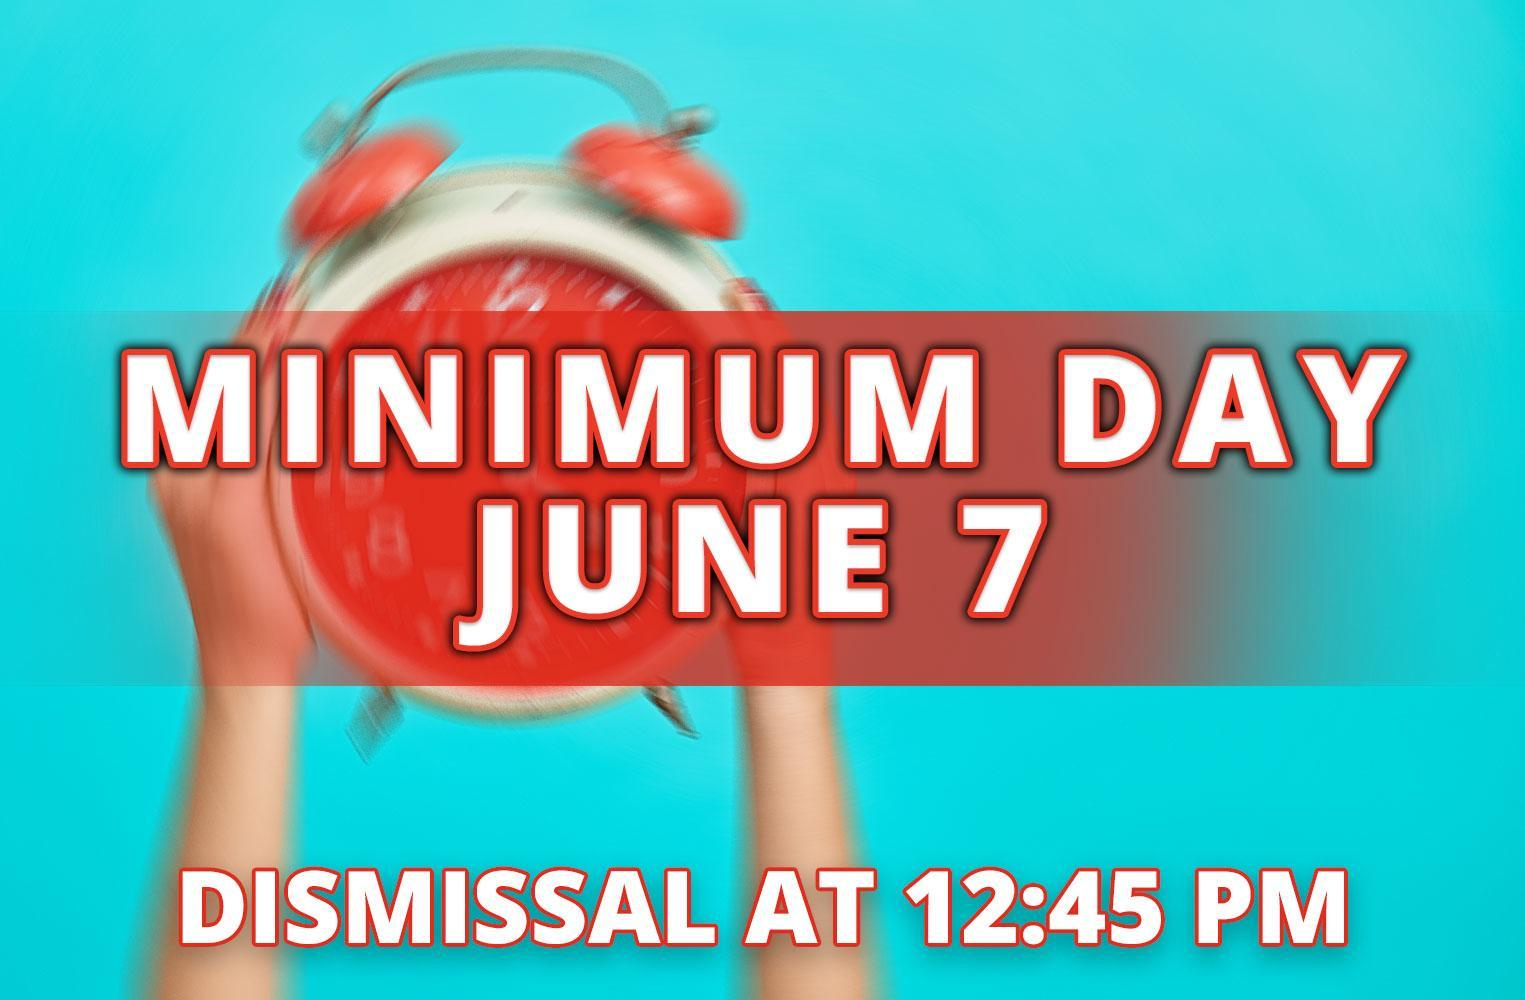 Minimum Day - June 7